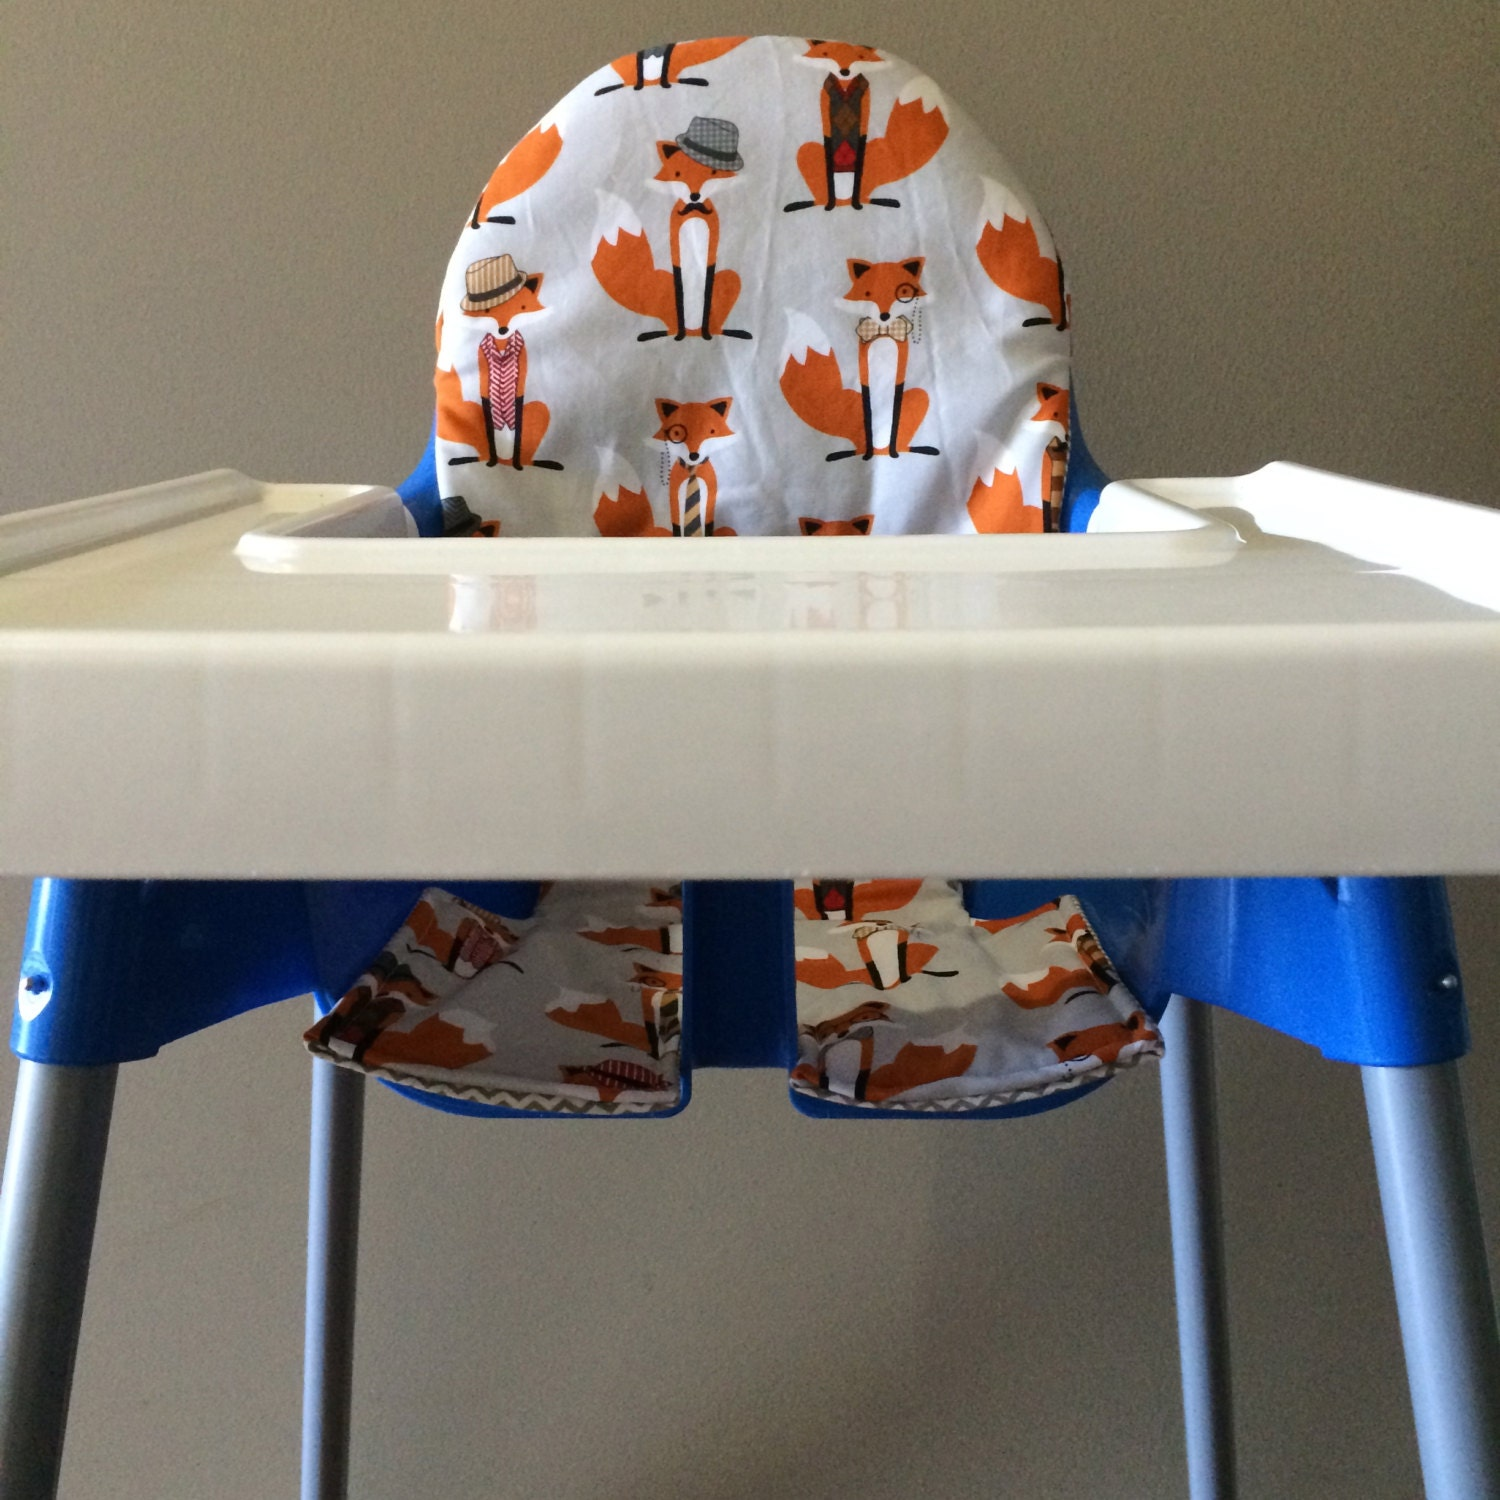 High Chair Covers Ikea Antilop High Chair Cover Cotton Orange Foxes And Grey